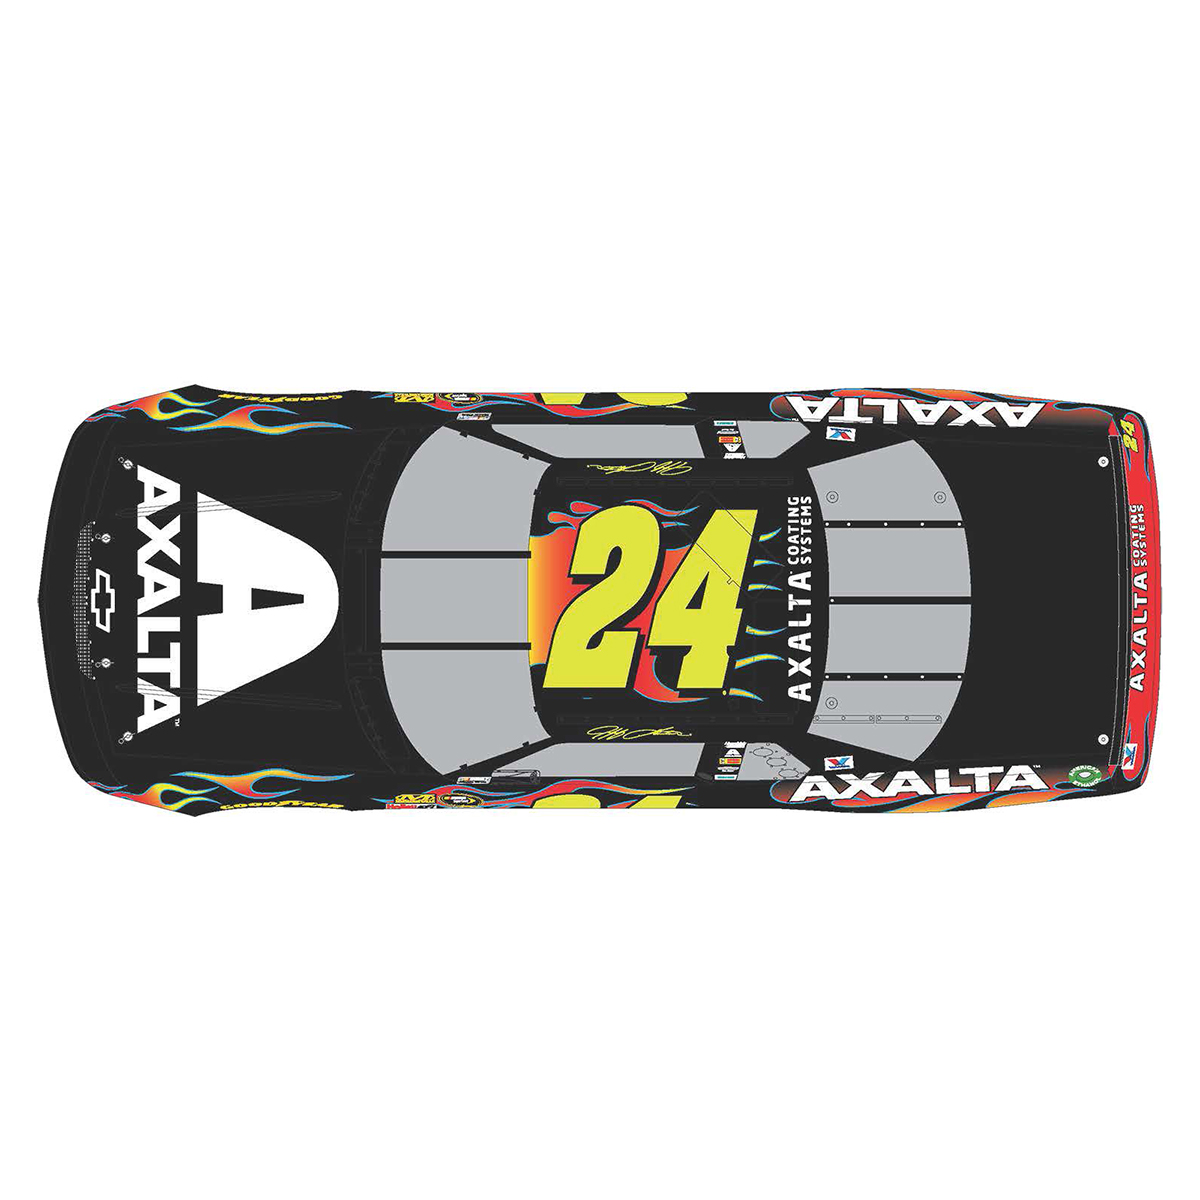 Autographed Jeff Gordon Store Exclusive Axalta Fantasy 1993 Chevrolet Lumina Galaxy 1:24 Scale ARC Die Cast